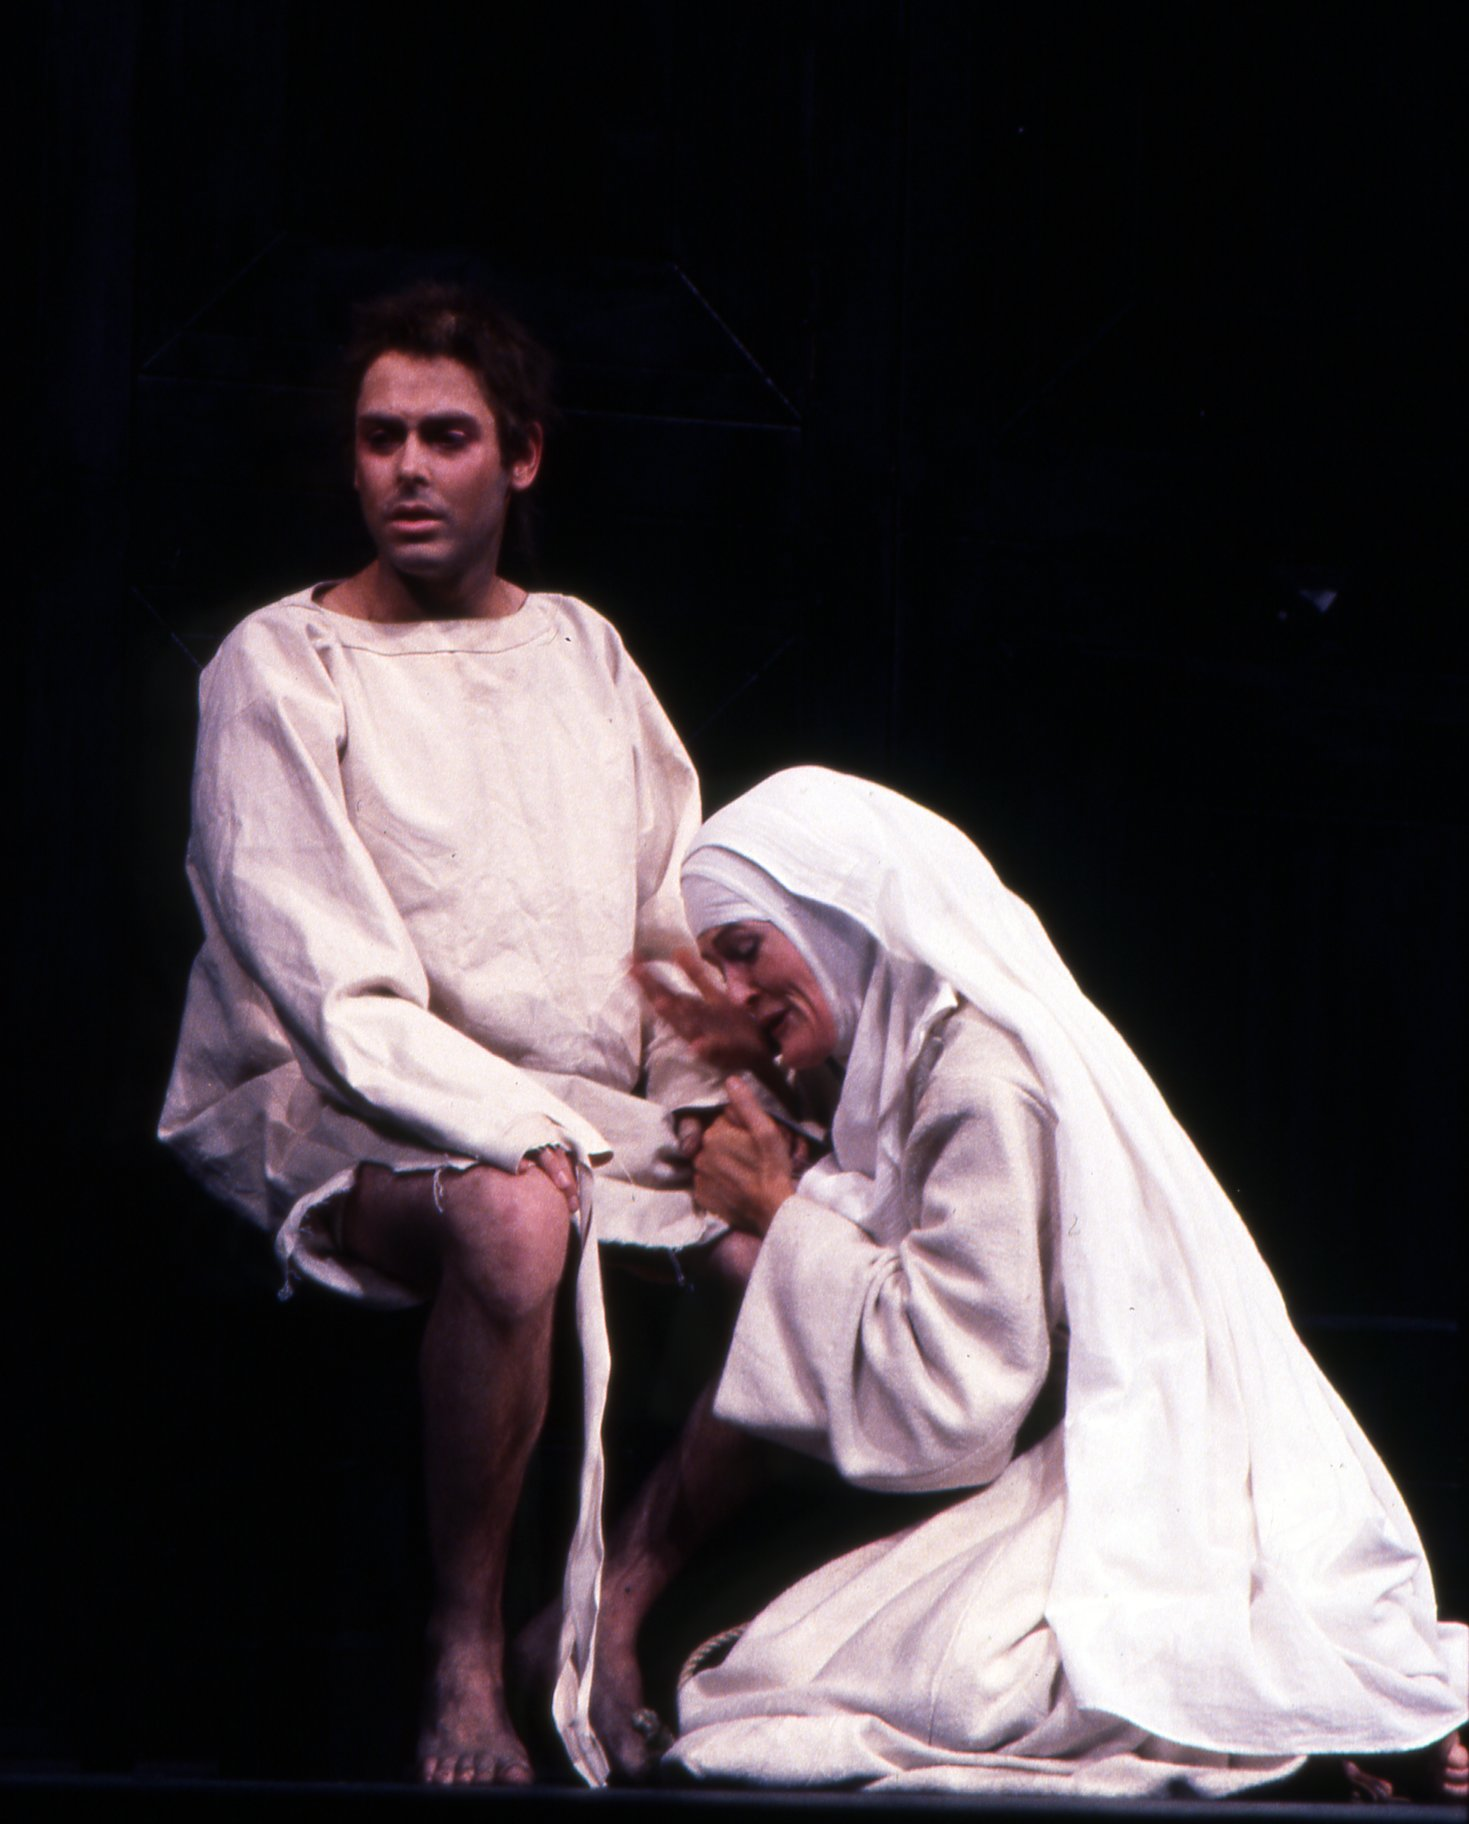 A nun kneels by a man in white rags.